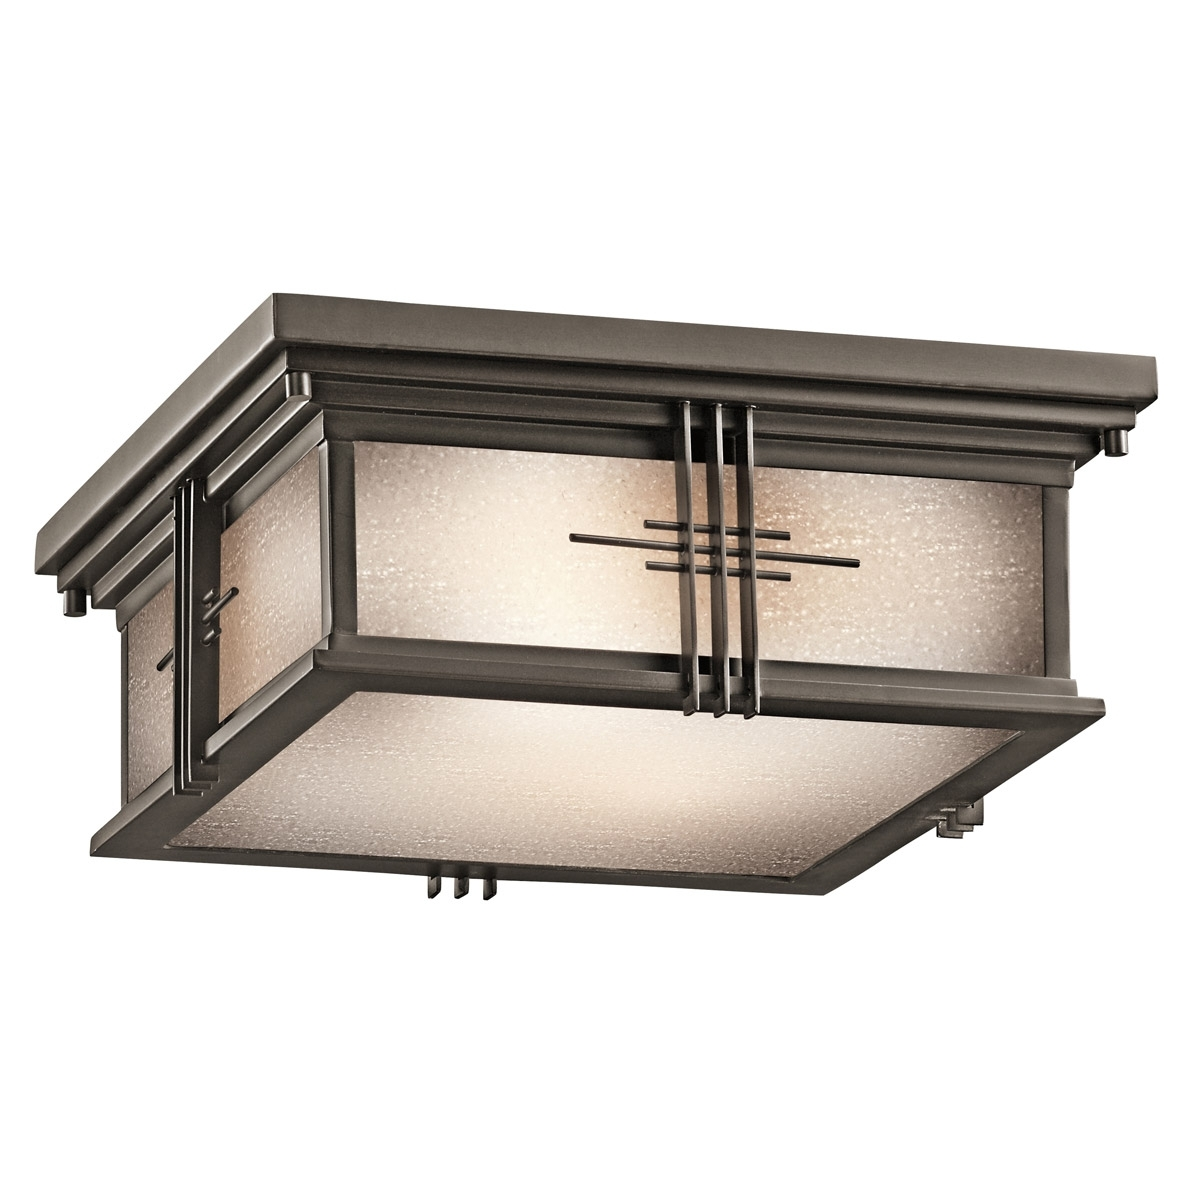 49164Oz Portman Square Outdoor Flush Mount Ceiling Fixture With Regard To Decorative Outdoor Ceiling Lights (#1 of 15)